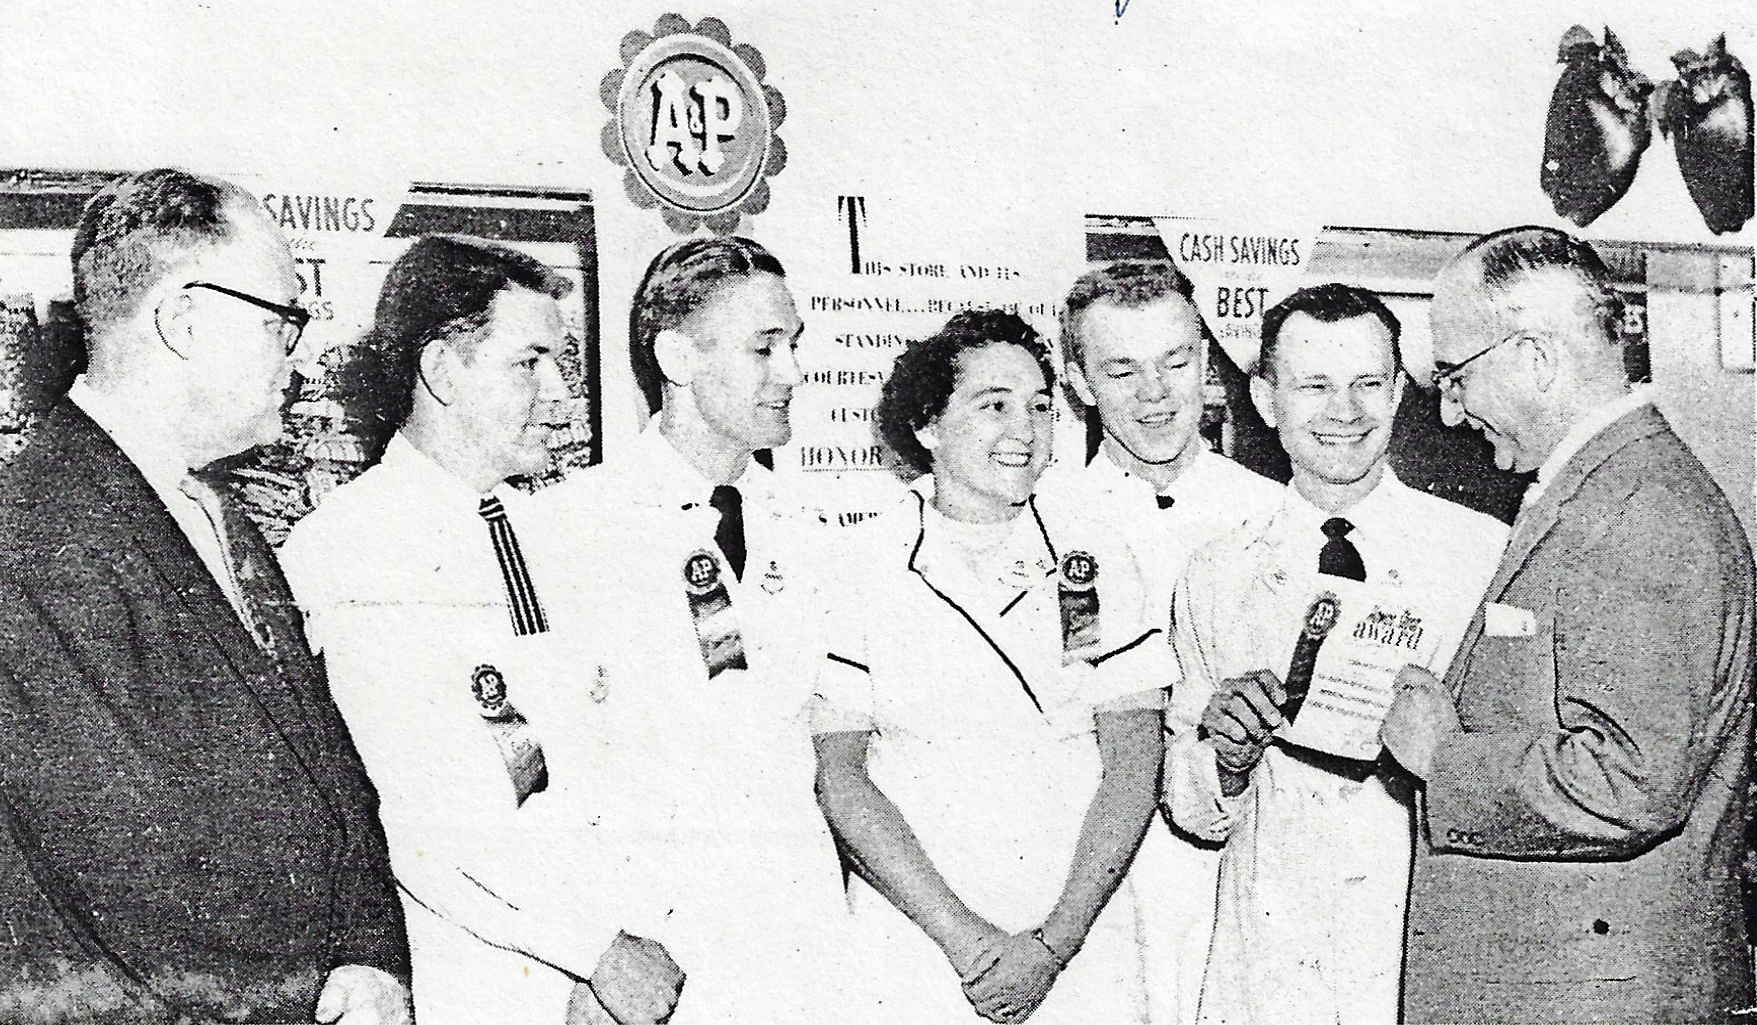 A&P Whiting employees accept an award for all employees for outstanding courtesy and customer service in 1958. From left to right are F. Kettles, district superintendent; Donald Utterback, assistant store manager; Clarence Goranowski, head of meat department; Mary White, cashier; Steve Krajnik, produce department; Mike Yaros, store manager; and K. Stitzer, Southside general superintendent of the A&P Company, Chicago.